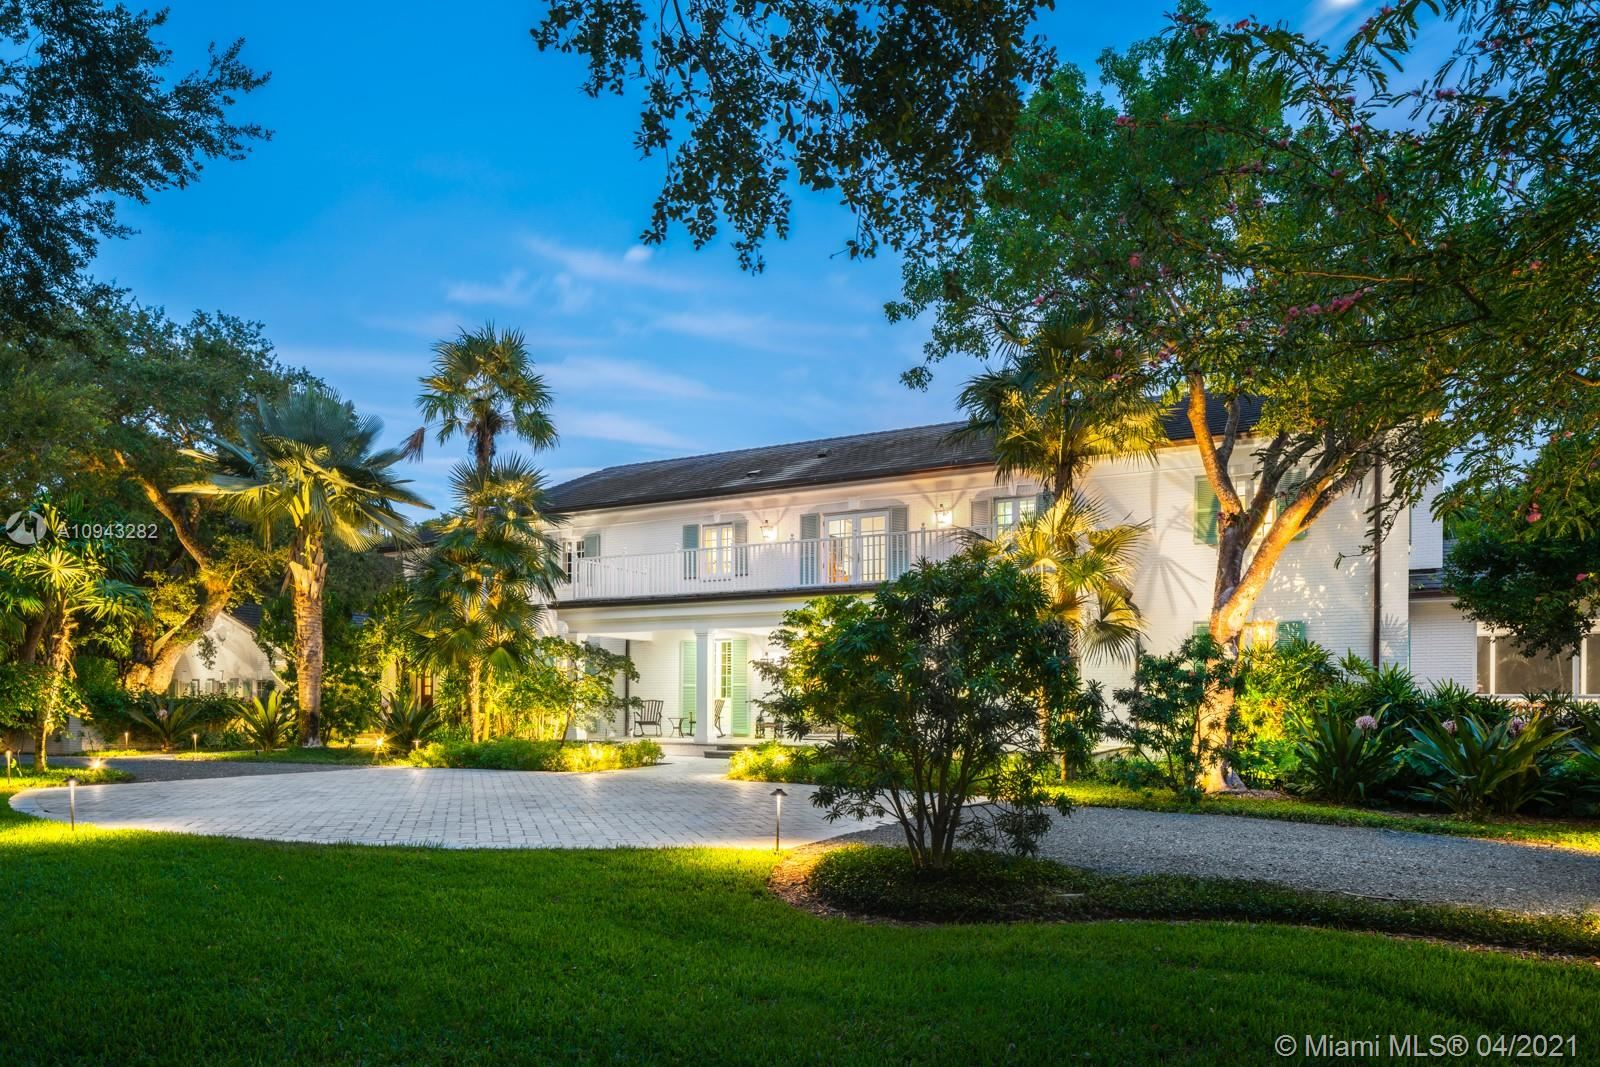 Photo of 8585 Old Cutler Rd, Coral Gables, FL 33143 (MLS # A10943282)